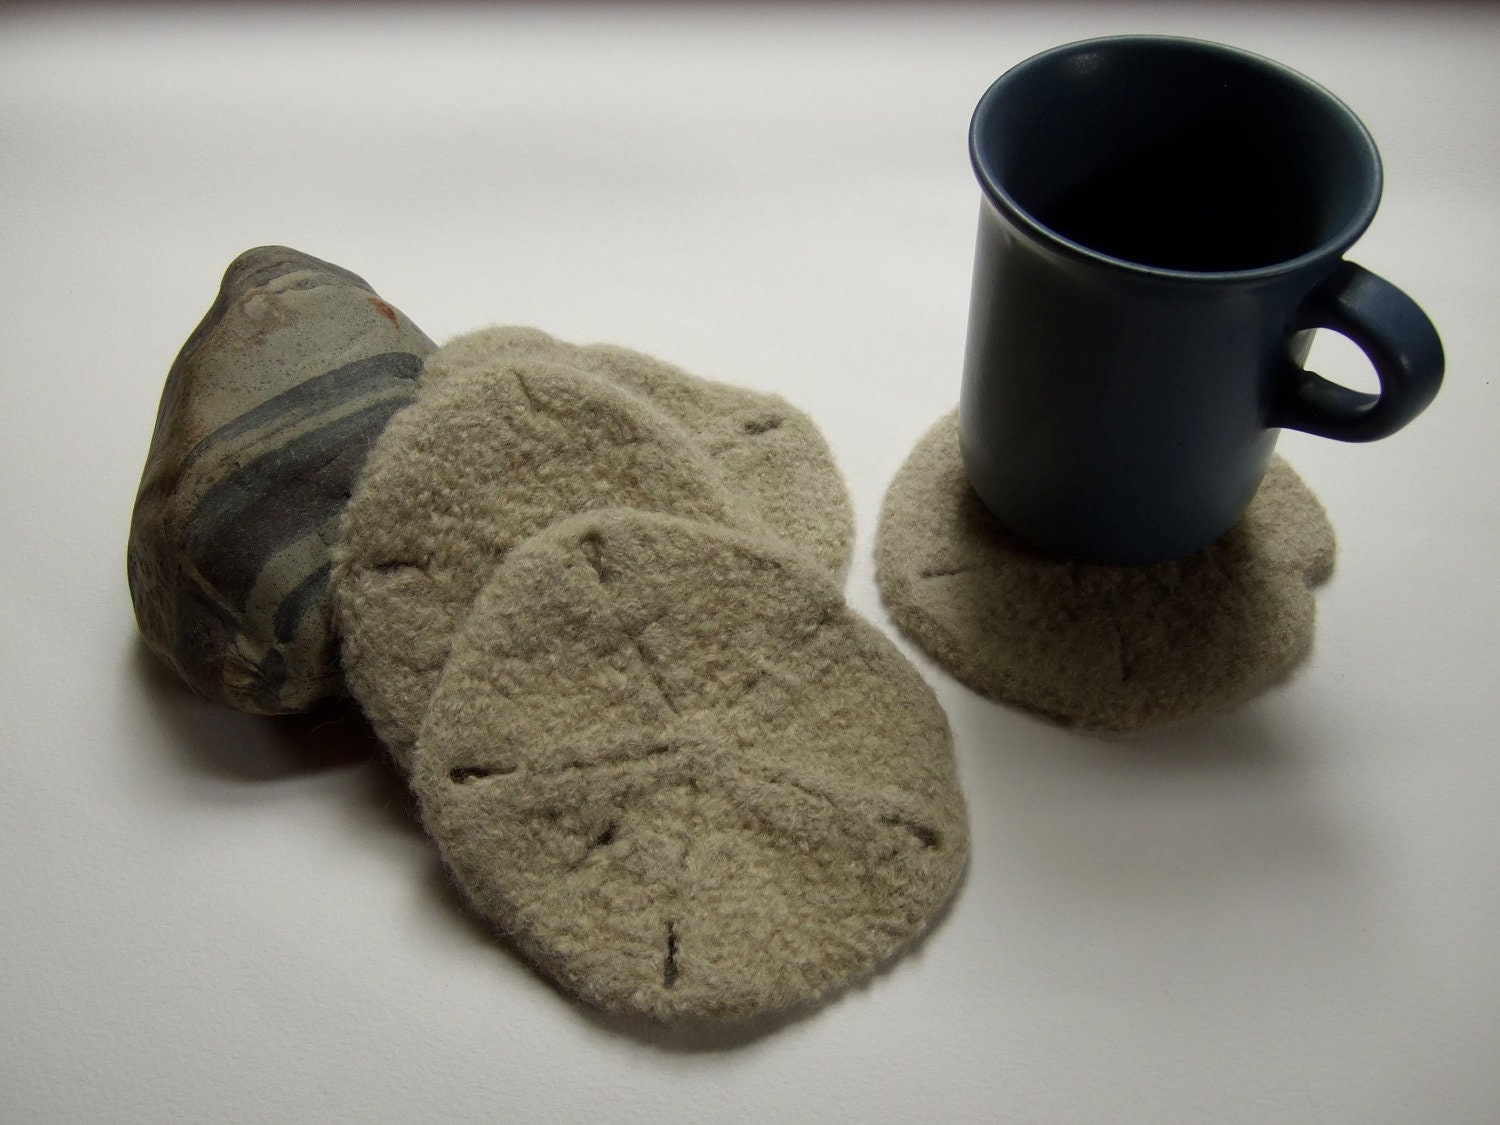 Sand Dollar Felted Wool Coasters: Coastal Maine Beach Nature Inspired - FluffAndBurl